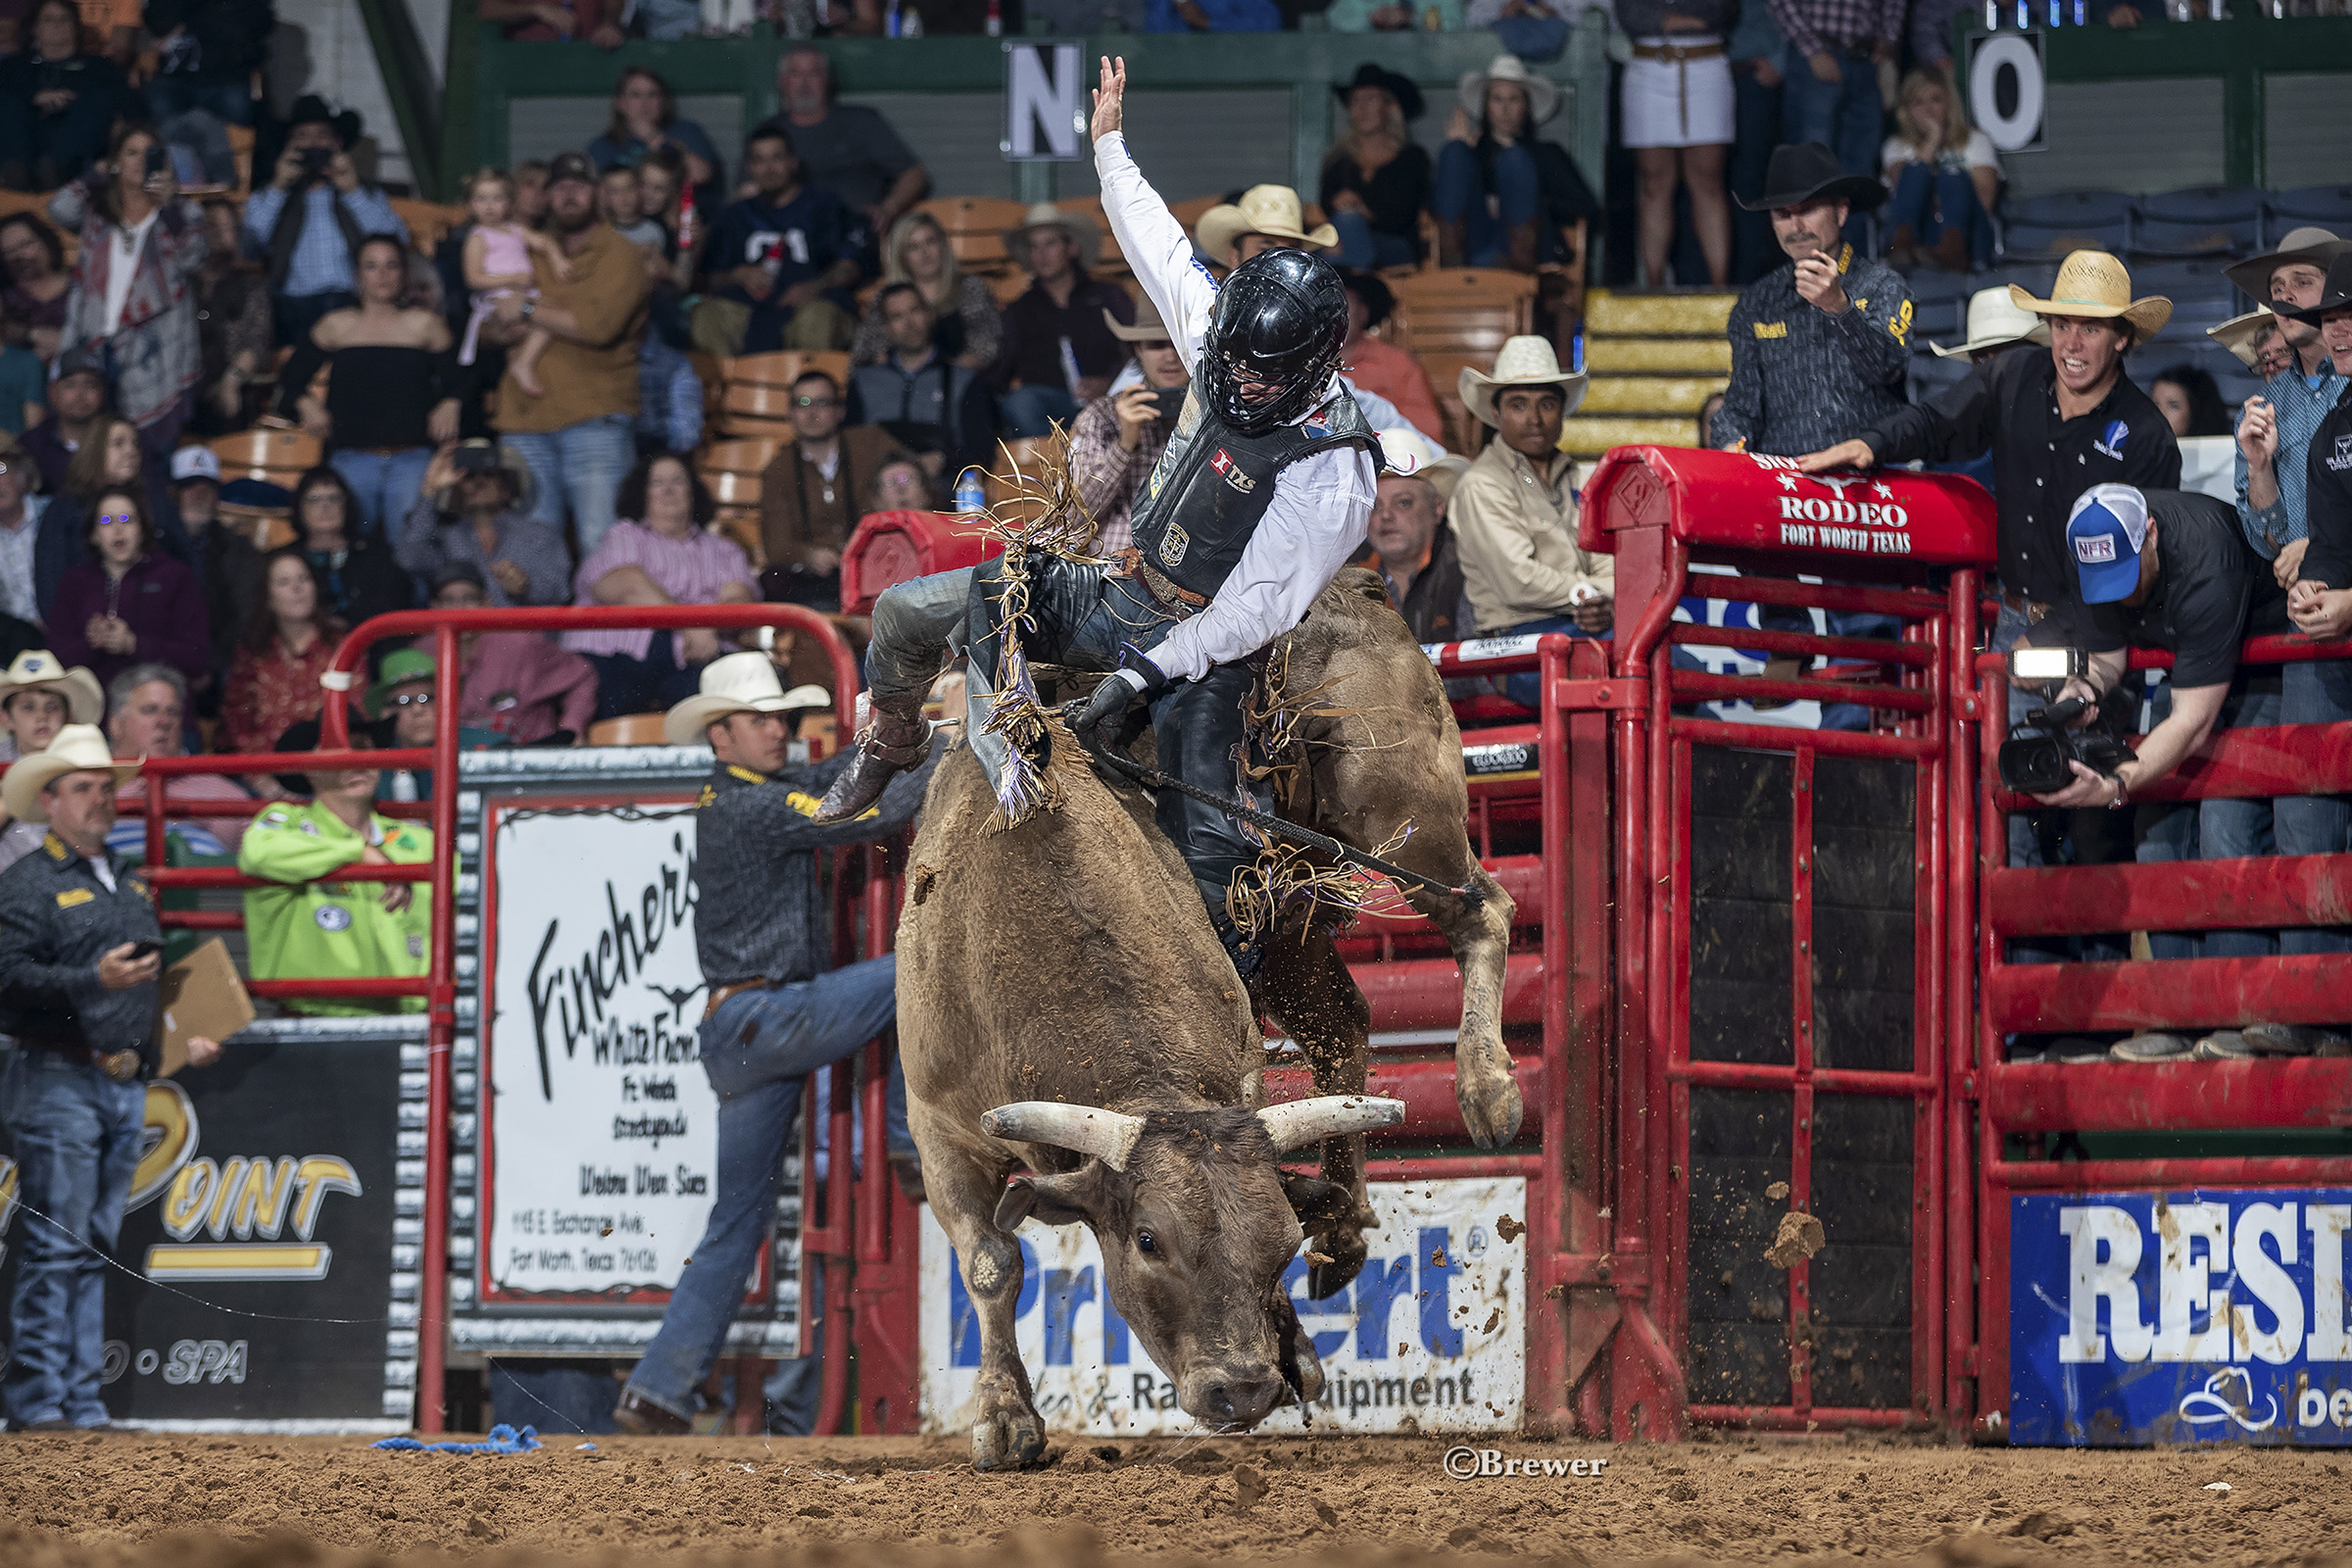 2019 PRCA Rookie of the Year leader, Stetson Wright winning the 2019 Fort Worth Tuff Hedeman Bull Riding